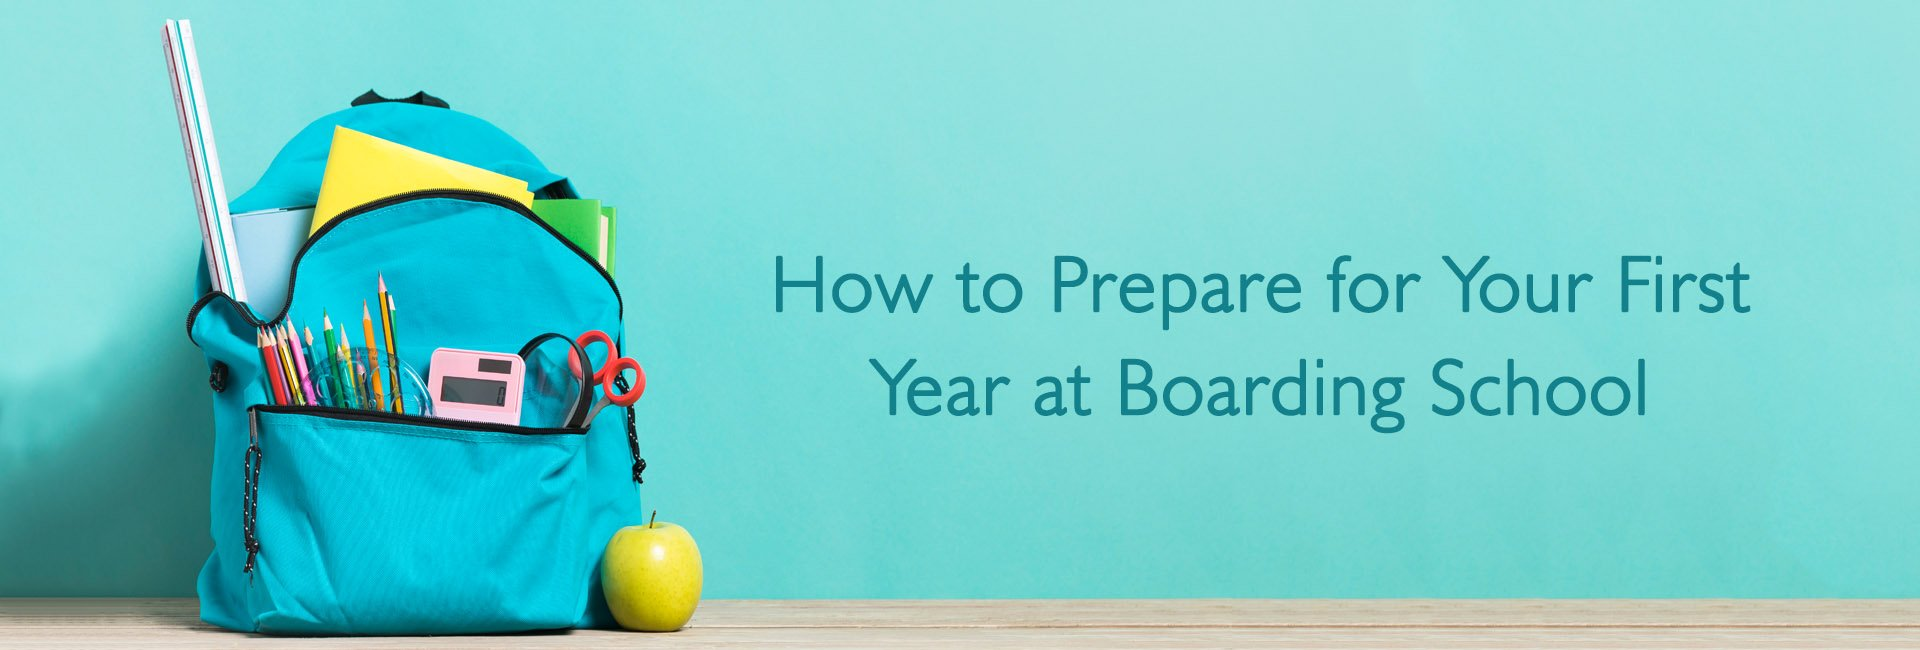 How to Prepare for Your First Year at Boarding School